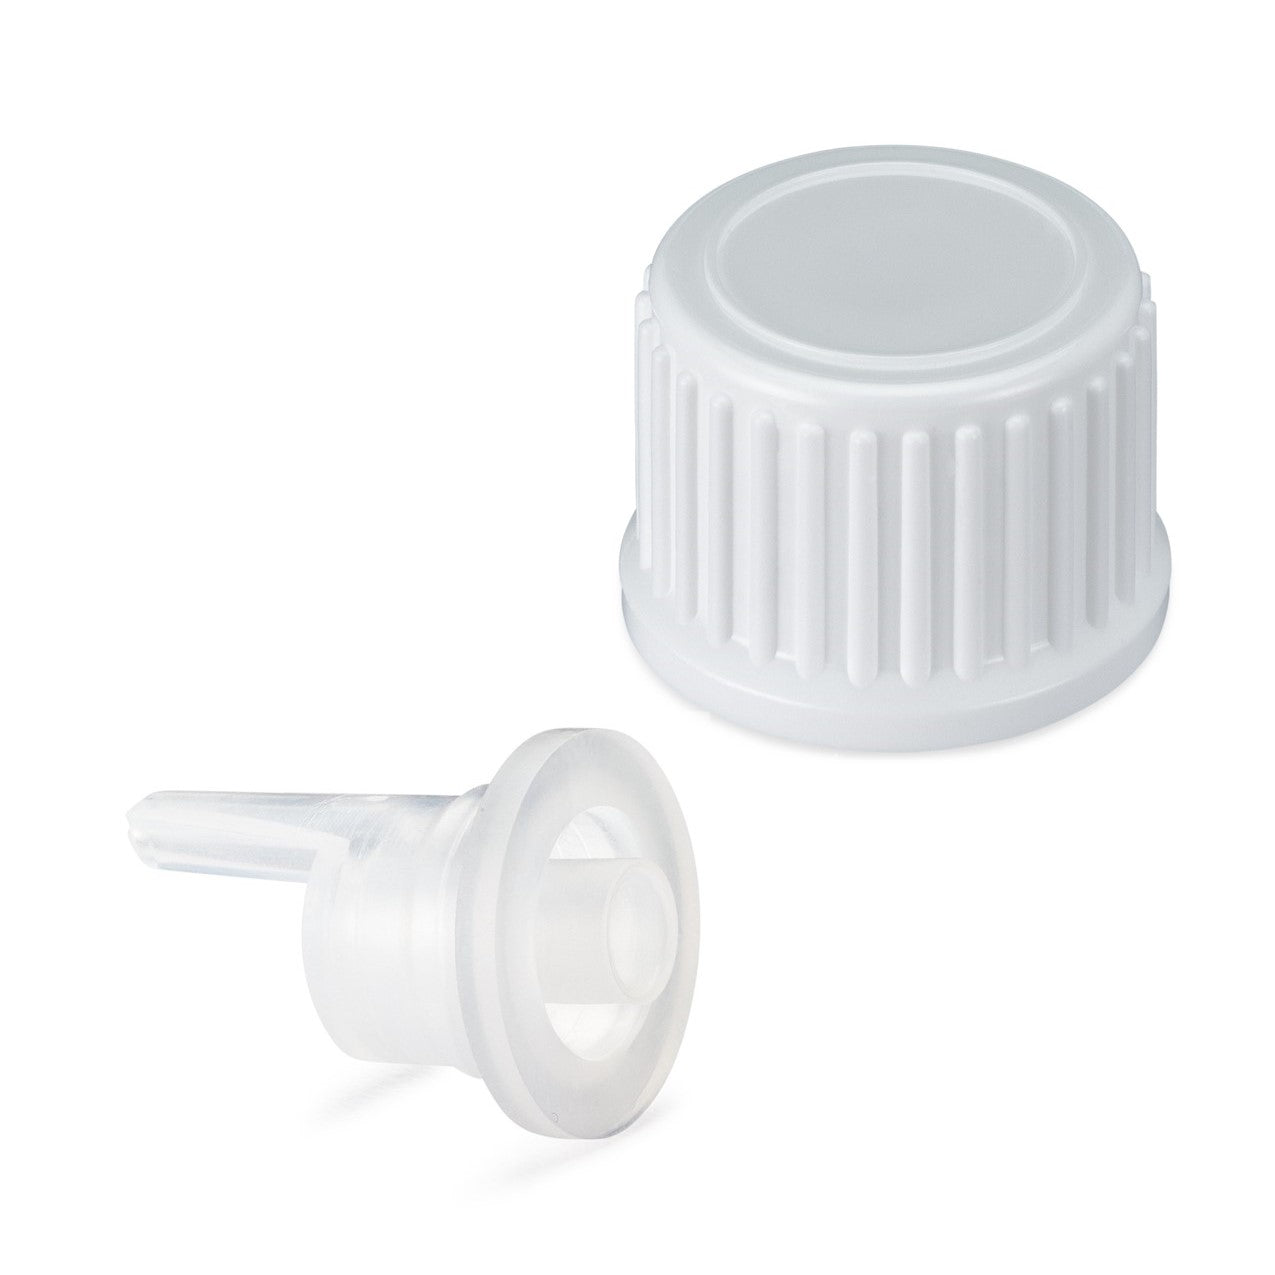 *USA* Regular EuroDrop® Cap assembled to 0.55mm Vertical Dropper Insert